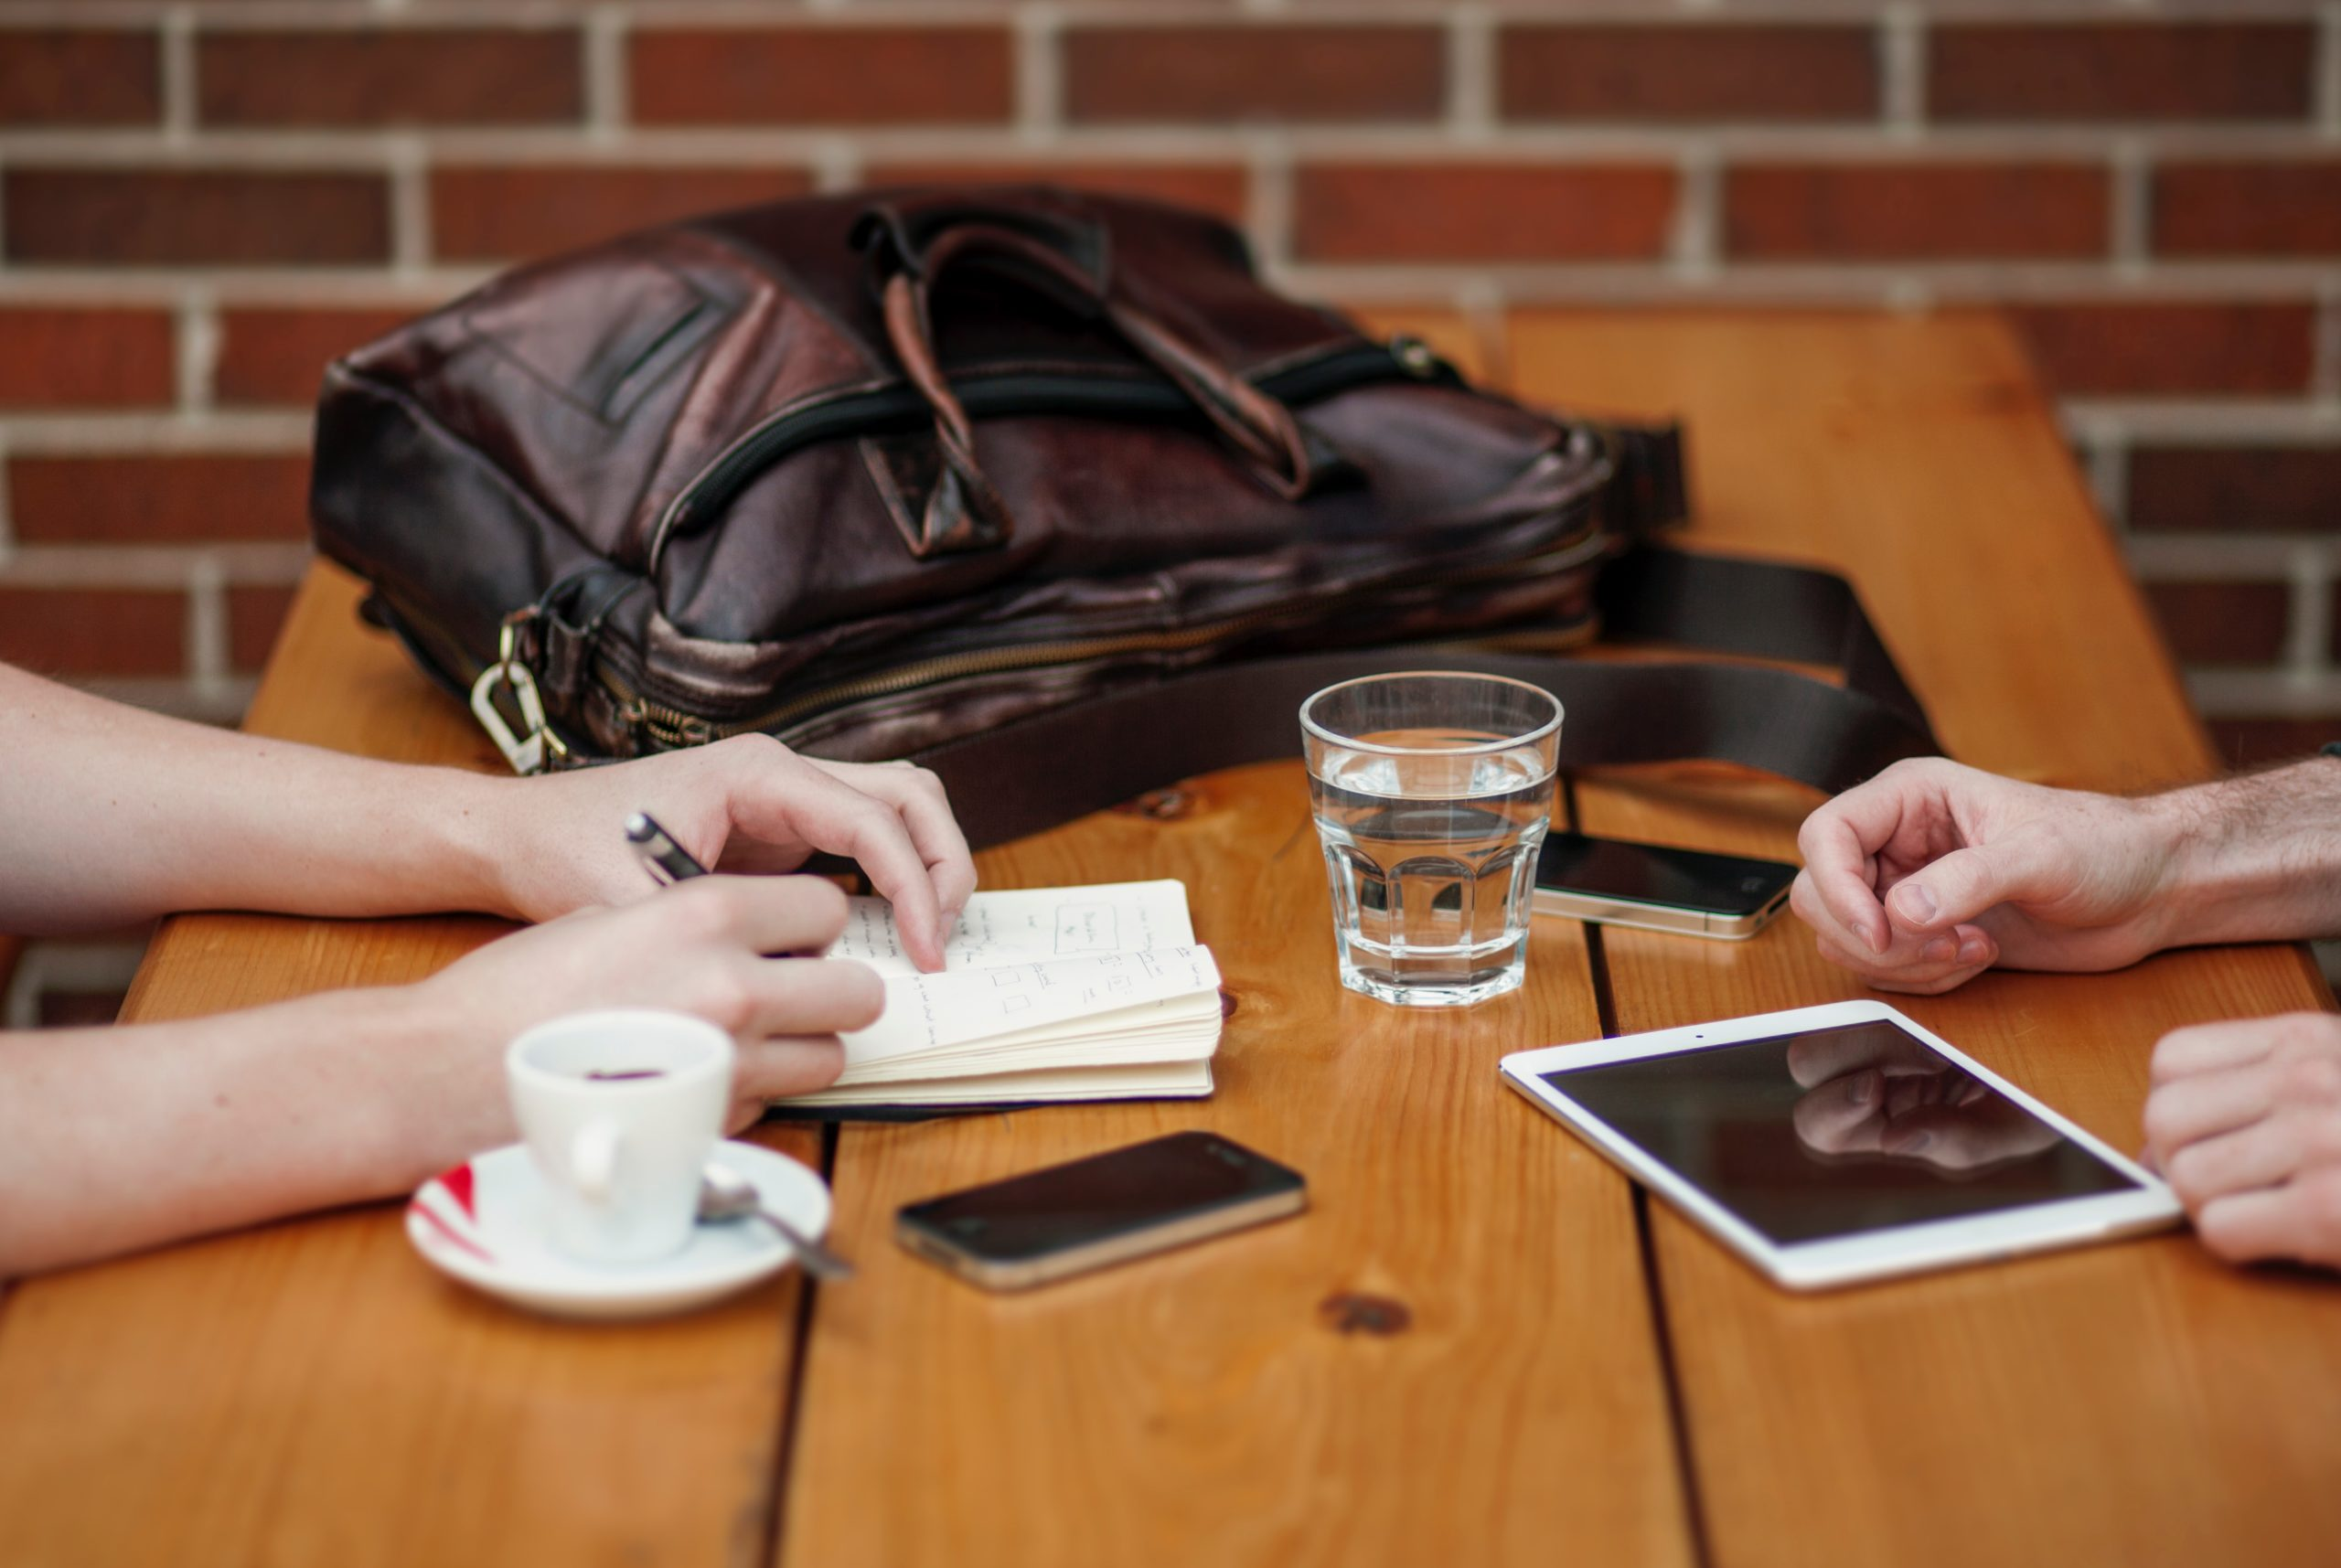 Conducting the Most Effective Informational Interviews | Change My Life Coaching